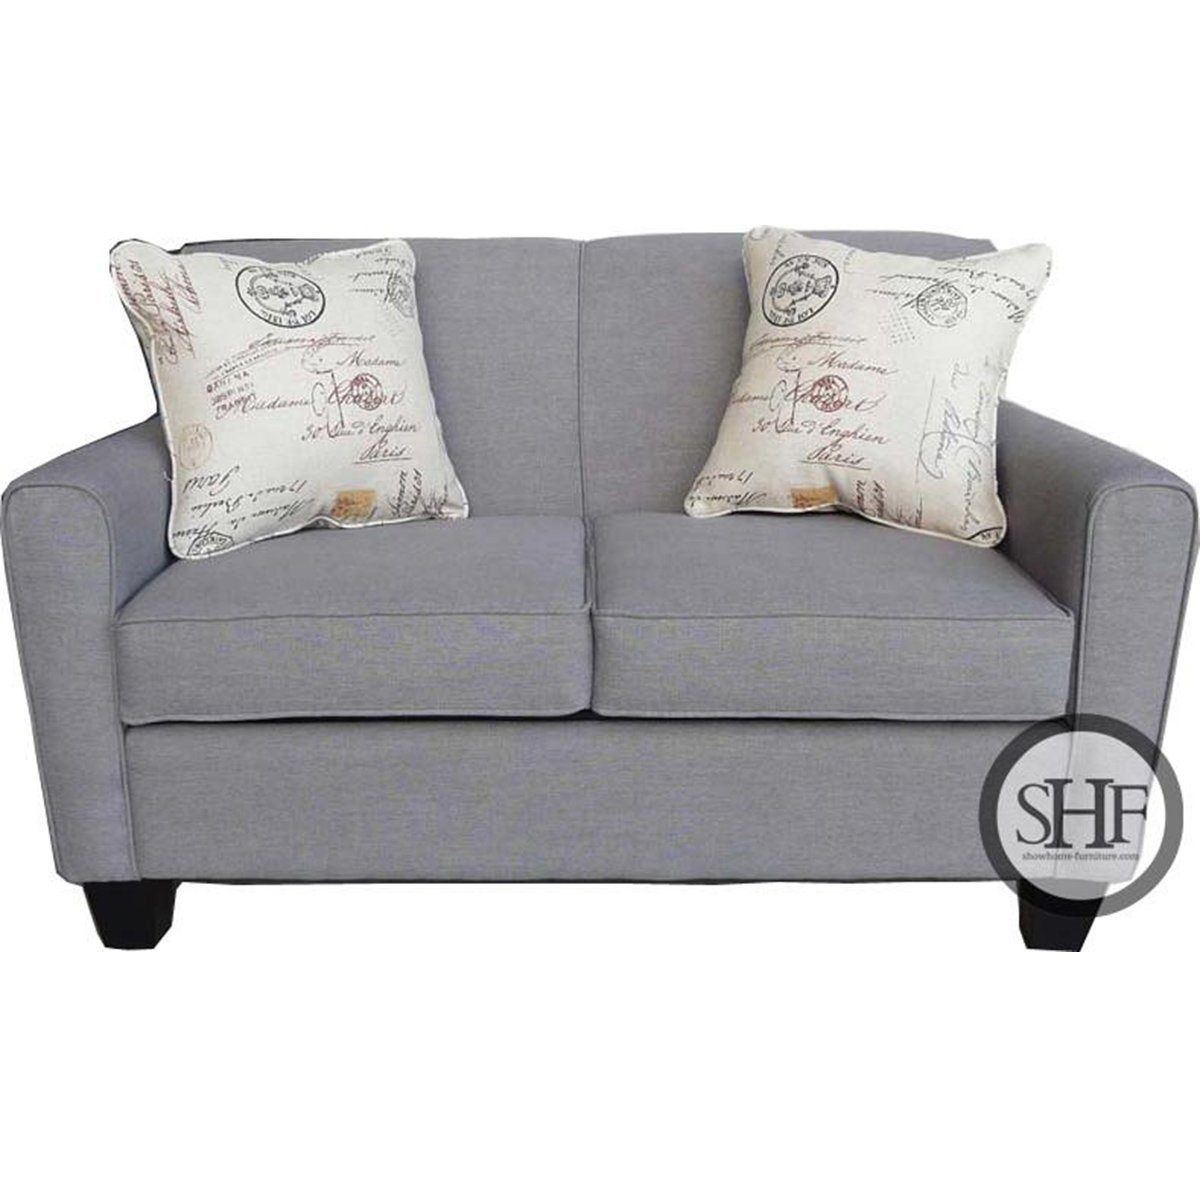 Custom Boxer Single Sofa Bed Made in Canada - Showhome Furniture